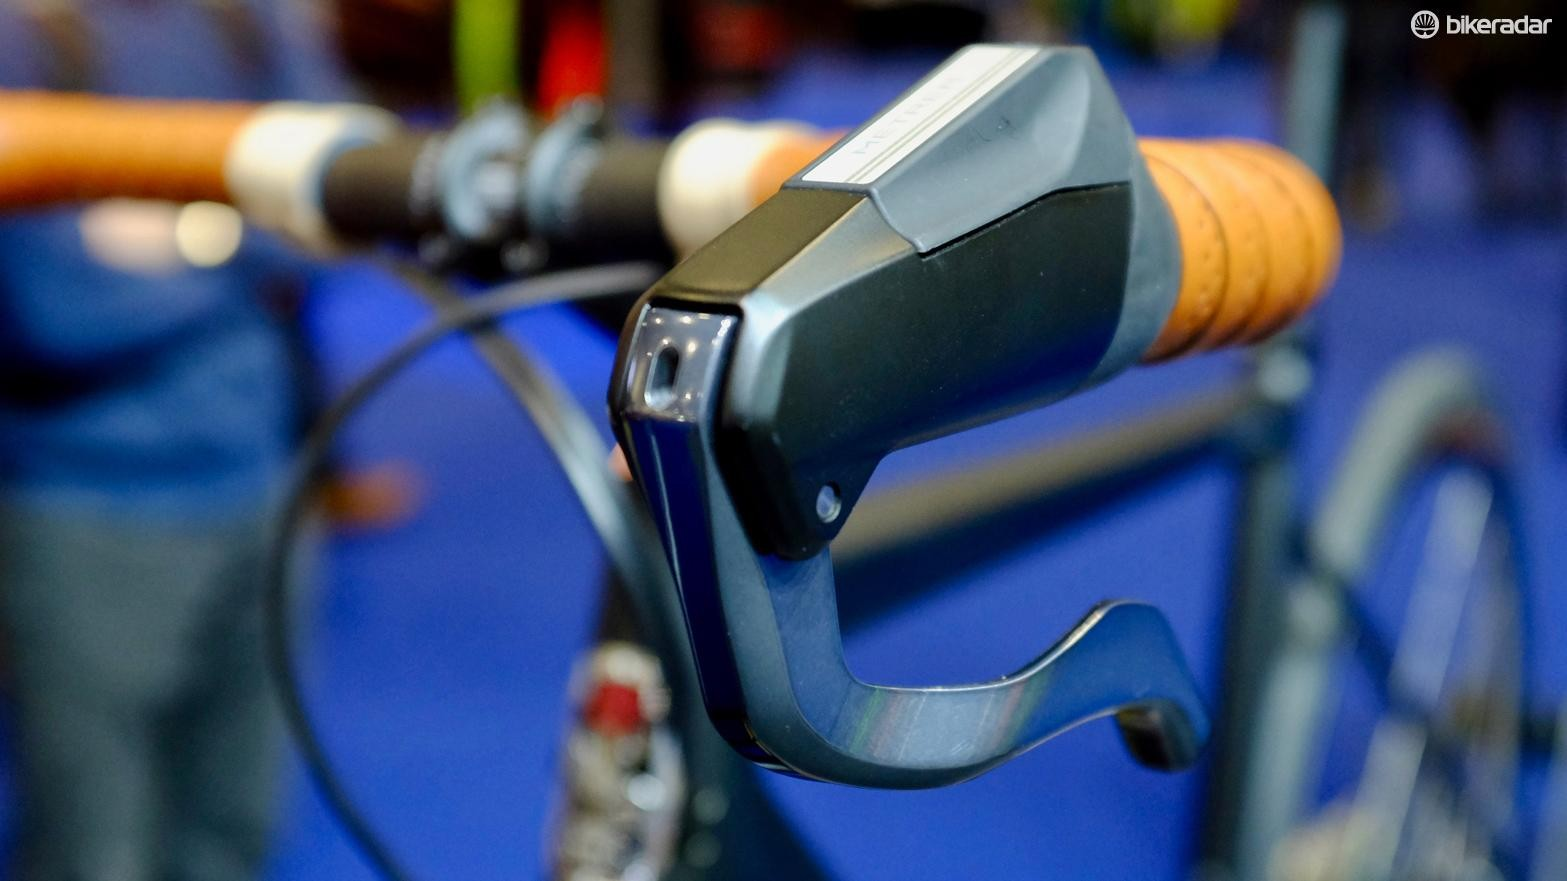 Shimano's Metrea components are on board